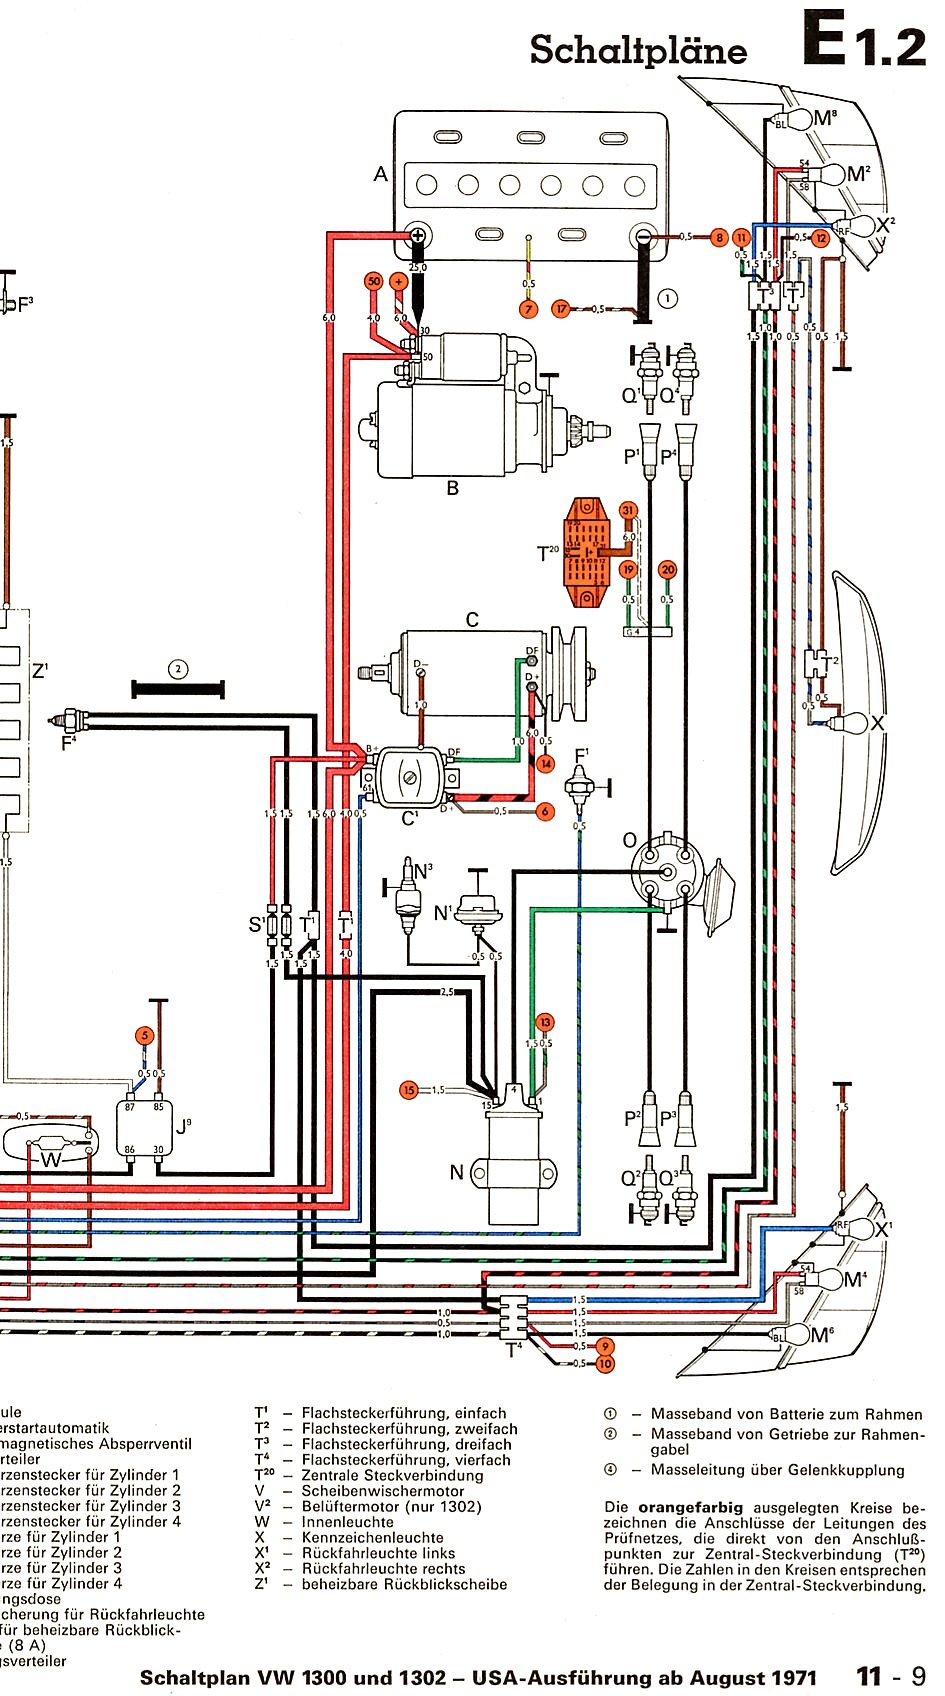 medium resolution of 67 vw bus wiring diagram 67 vw bus seats wiring diagram vw generator to alternator conversion vw generator to alternator conversion